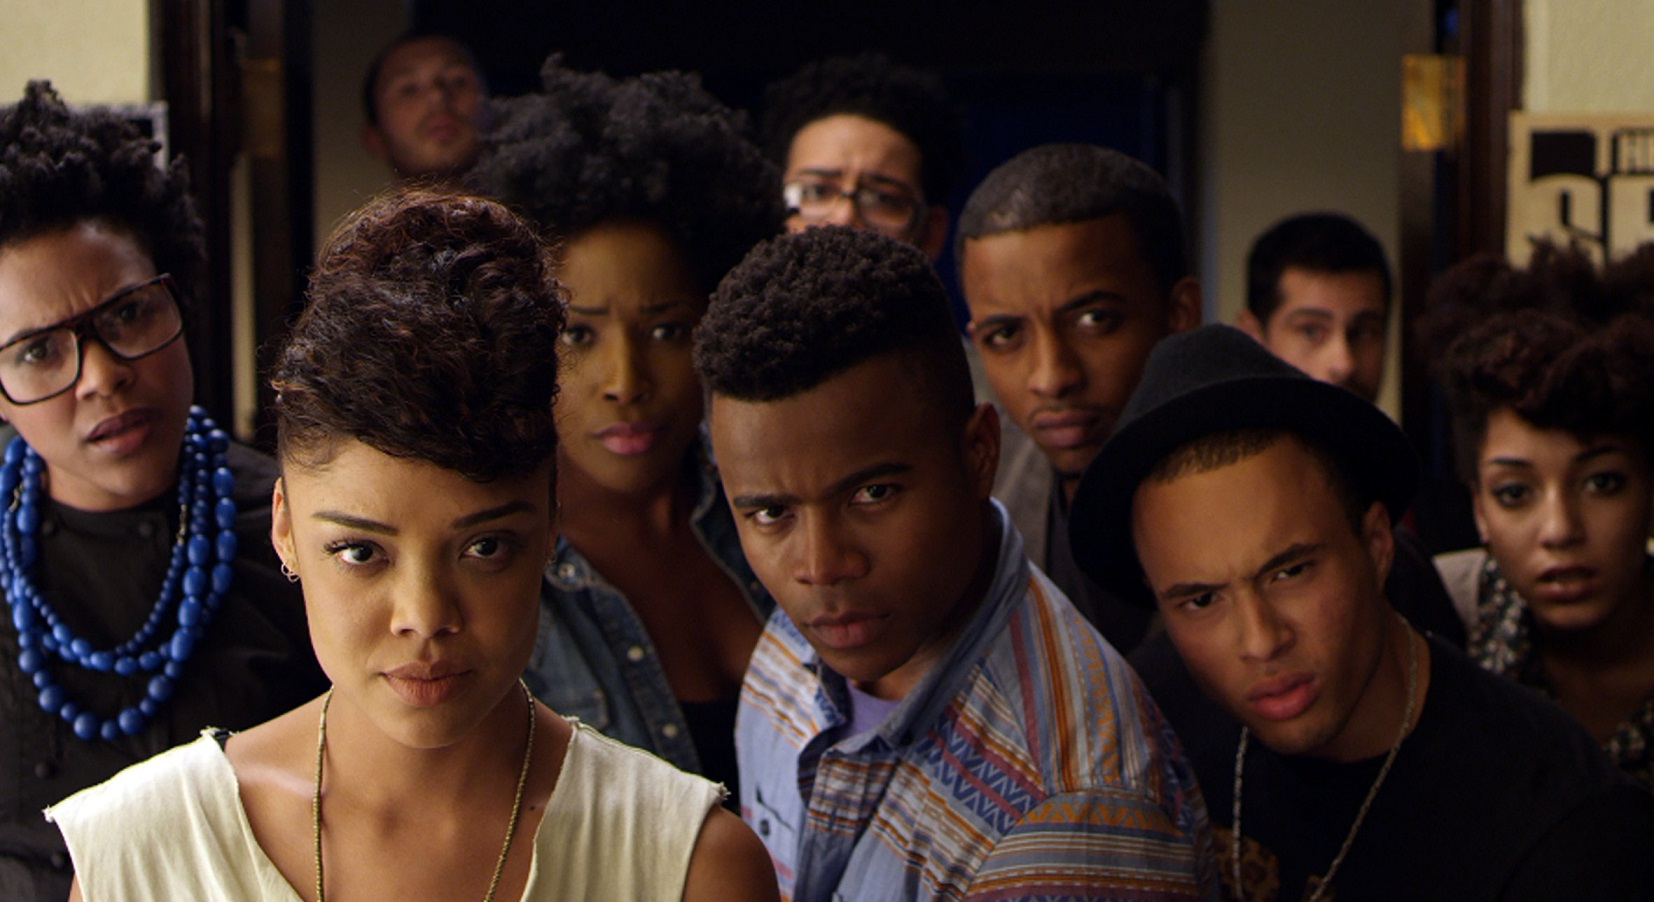 "Cena do filme ""Dear white people"", de 2014, que inspirou a série do Netflix. Alguns atores do filme, como Marque Richardson e Ashley Baine Featherson estão nas duas produções. Foto Archives du 7eme Art / Photo12"